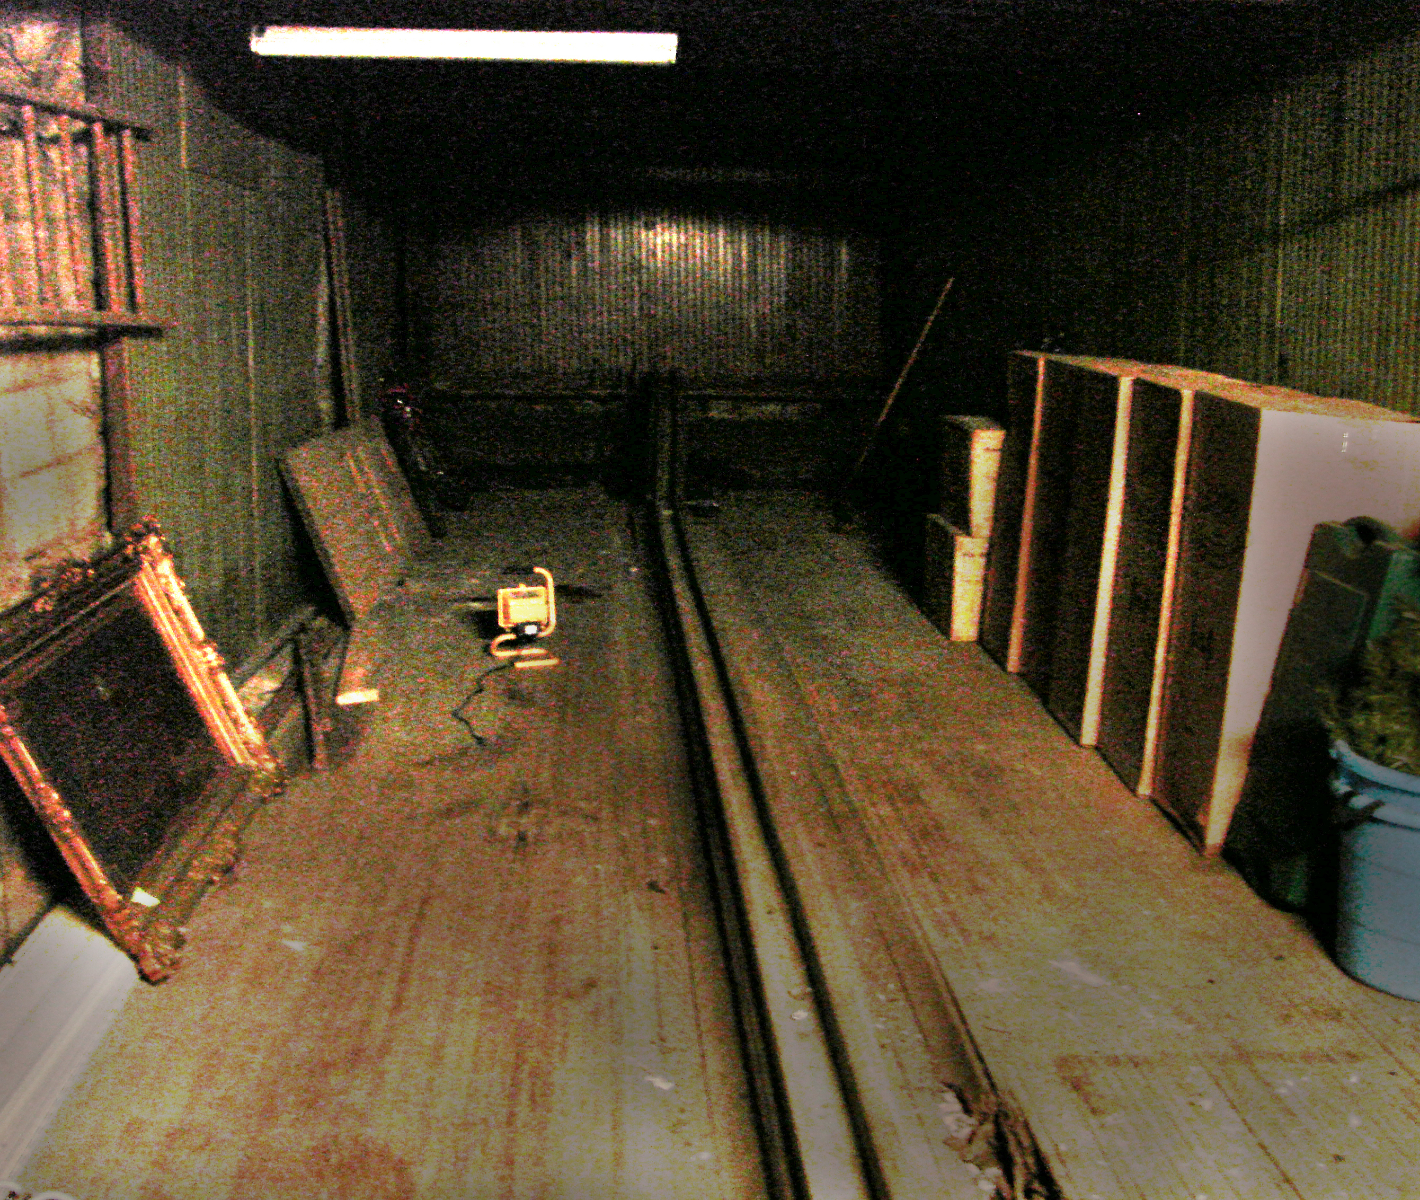 Bowling lanes from the 1890s.